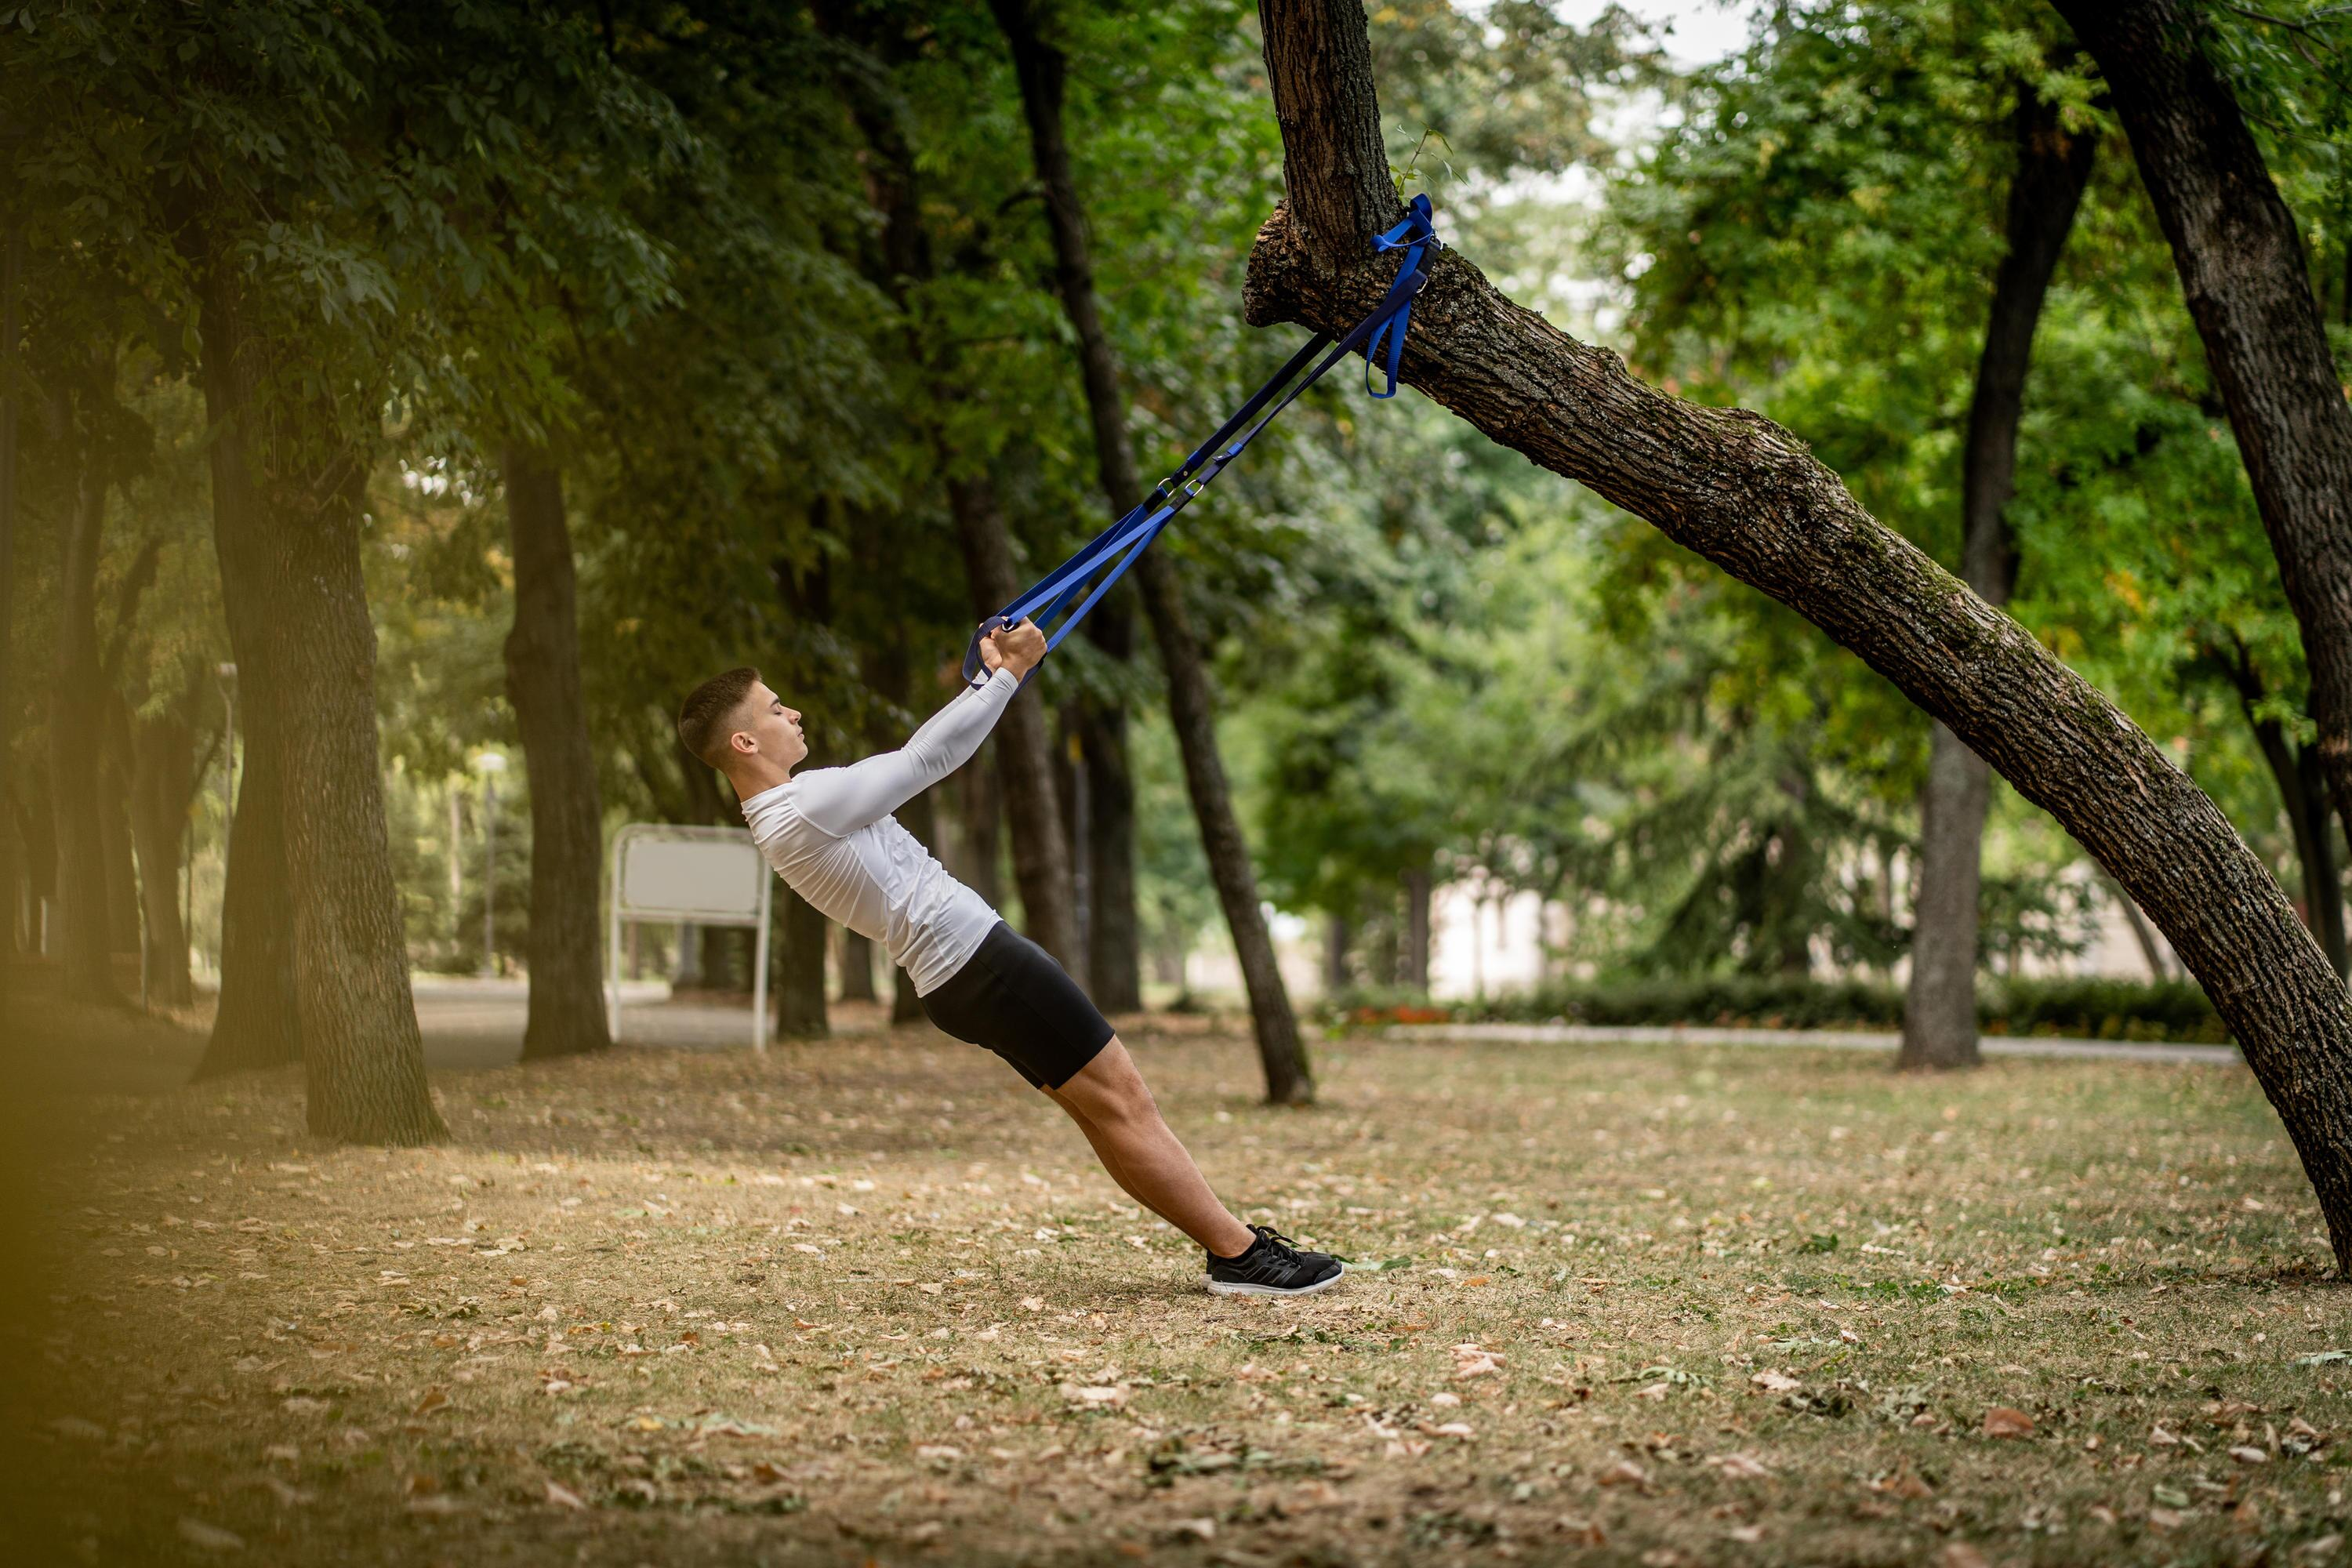 Bild zu trx-band, schlingen, suspension, trx-training, muskelaufbau, koordination, kraft, sport, fitness